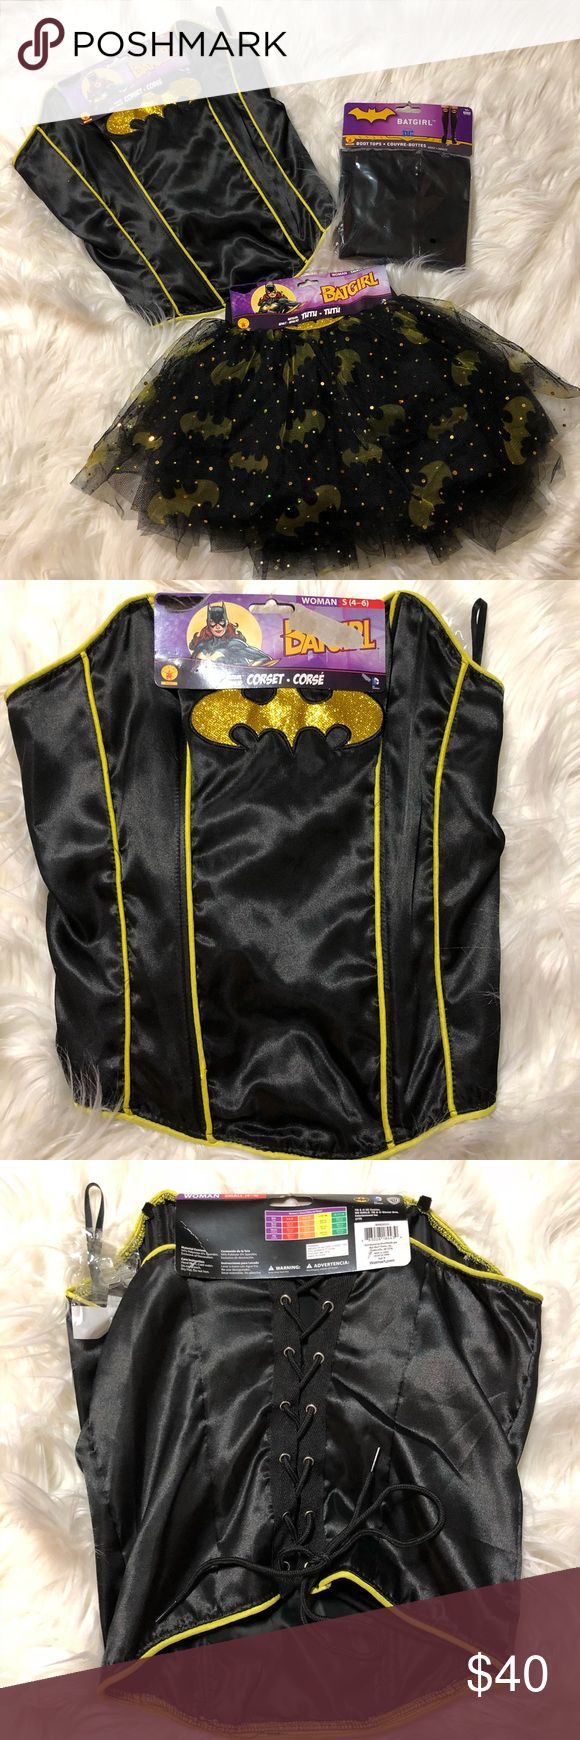 Batgirl costume Batgirl costume. Perfect for Halloween, cosplay or comic con. Includes batgirl corset. Laces down the back and comes with clear bra straps if you would like to use them or can be worn without. Also includes batgirl tutu with the bat sign and glitter through out and brand new boot tops. Complete batgirl costume! Everything is brand new! Size small Other